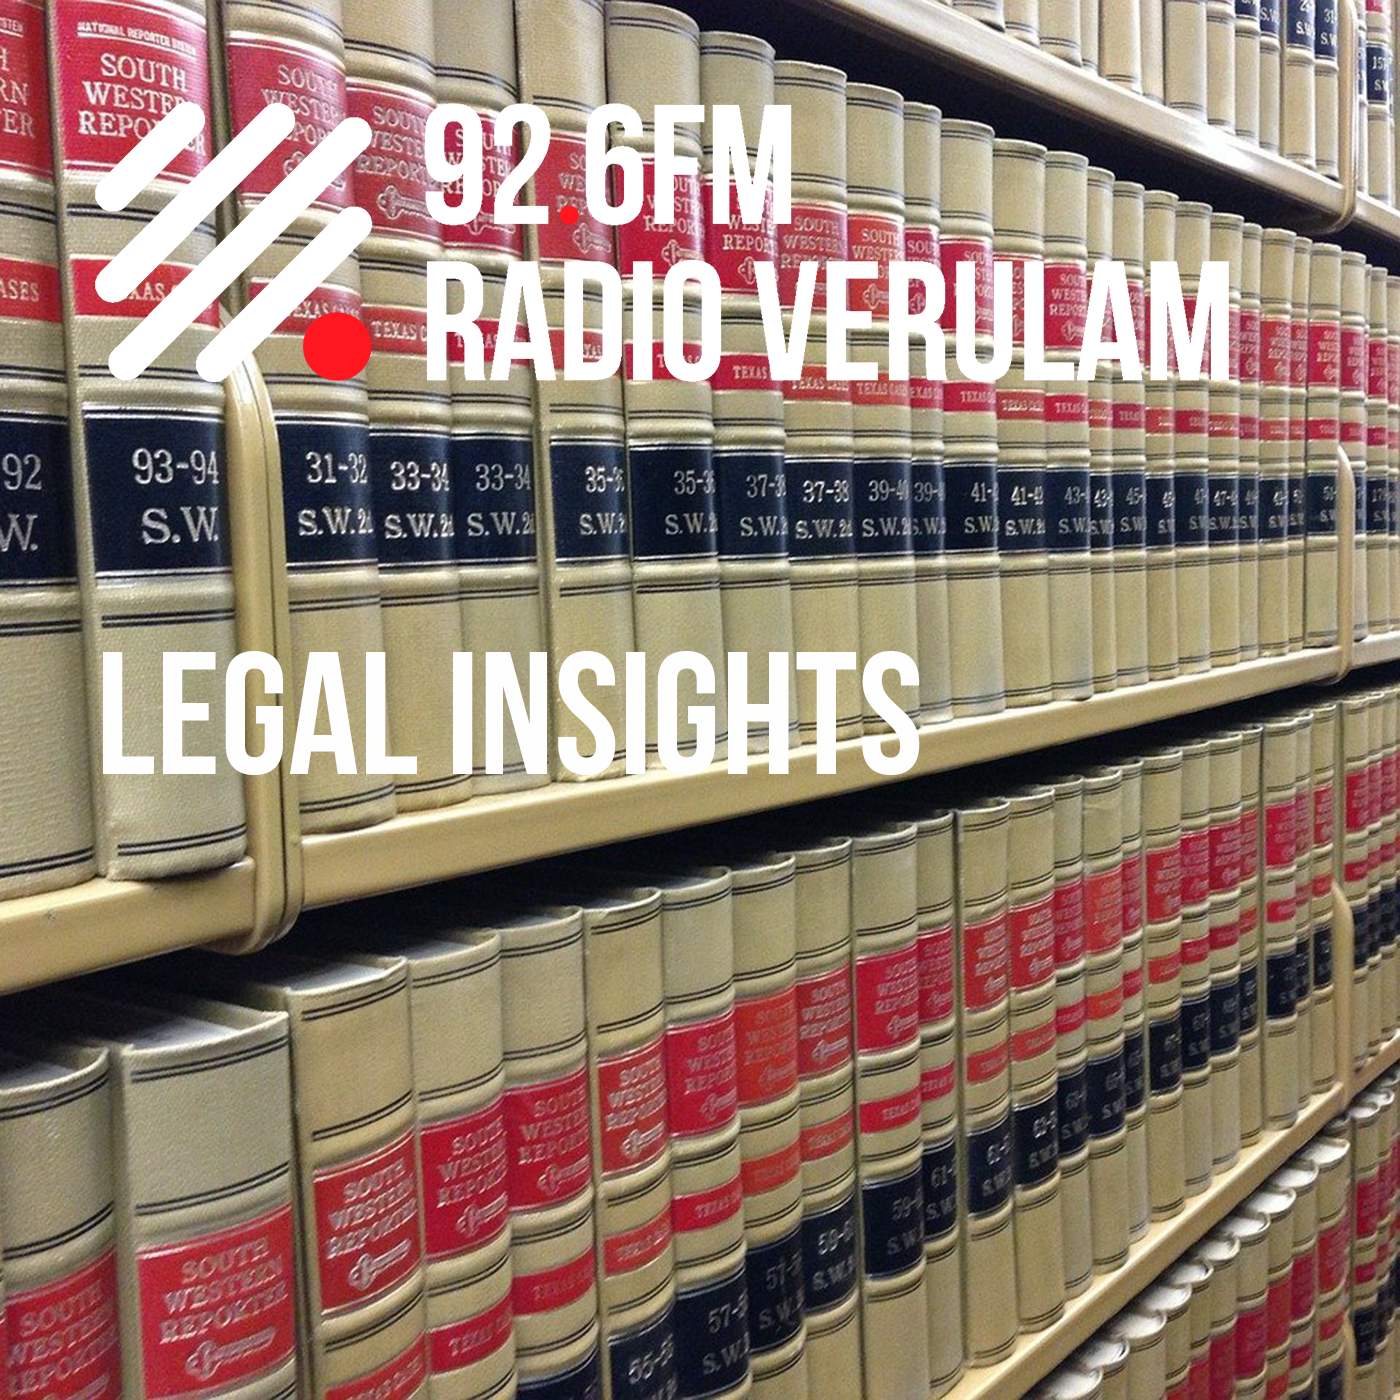 Legal Insights with Sherrards Solictors on Radio Verulam